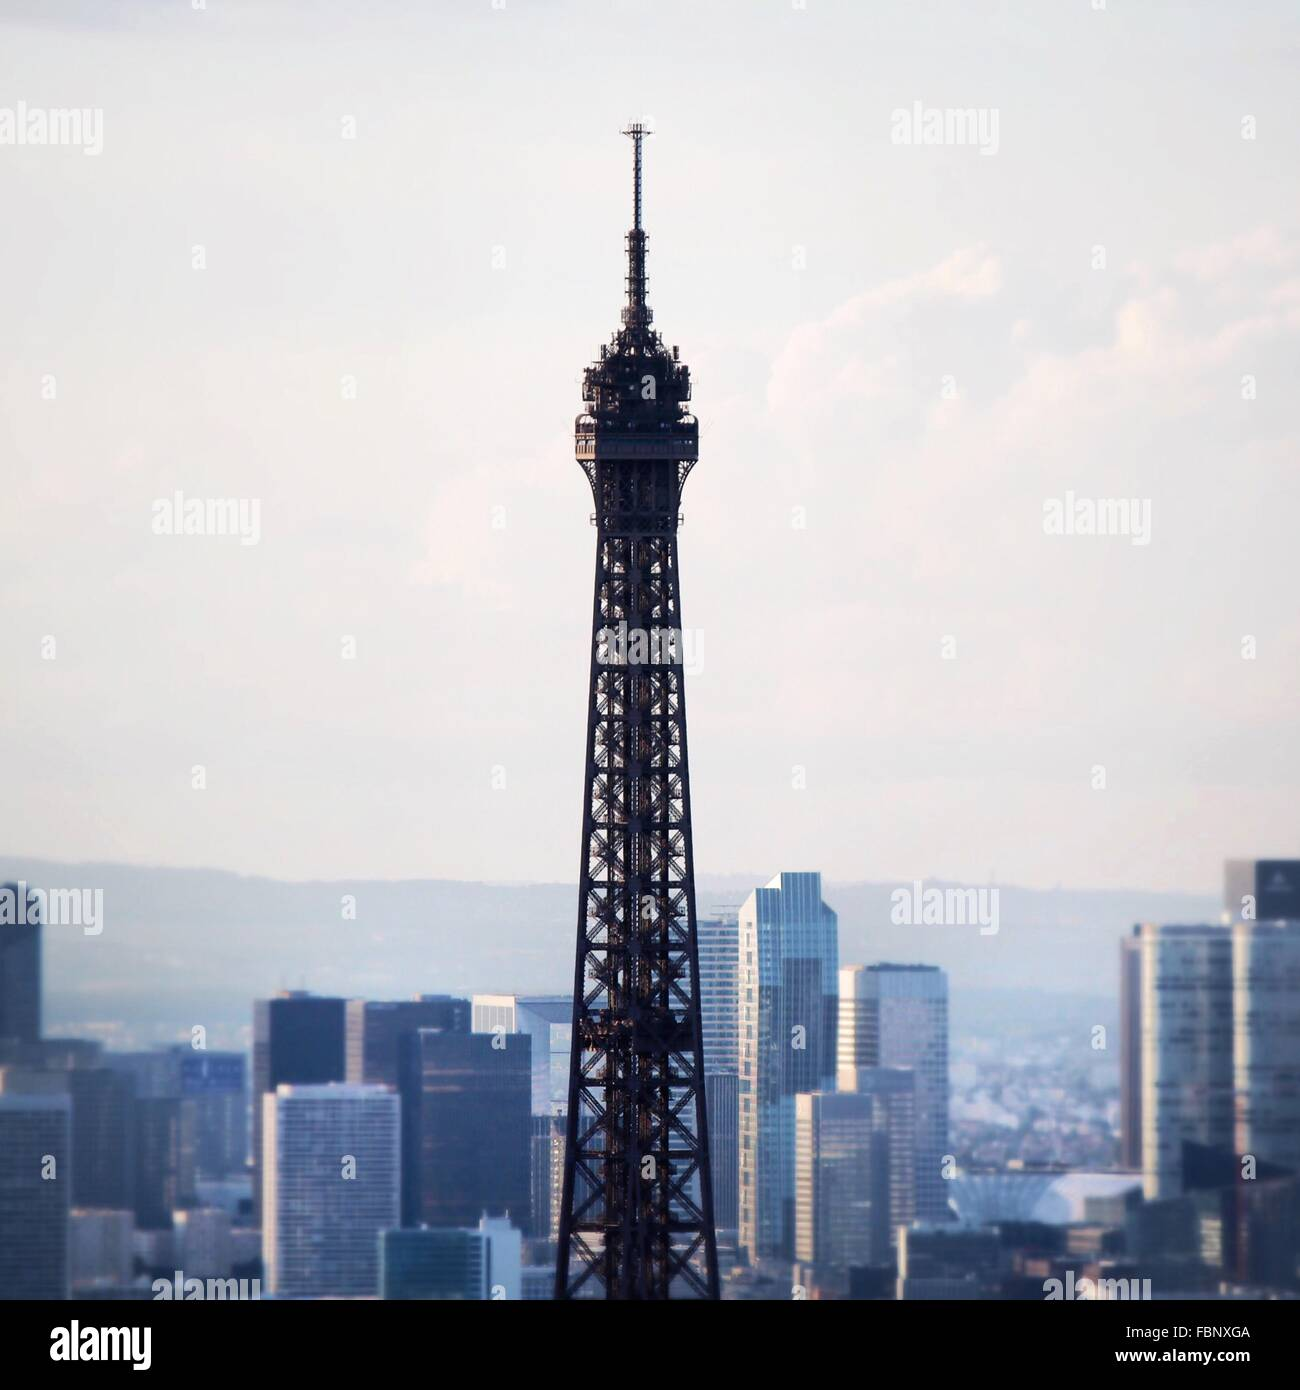 High Section Of Eiffel Tower Against Buildings In City - Stock Image